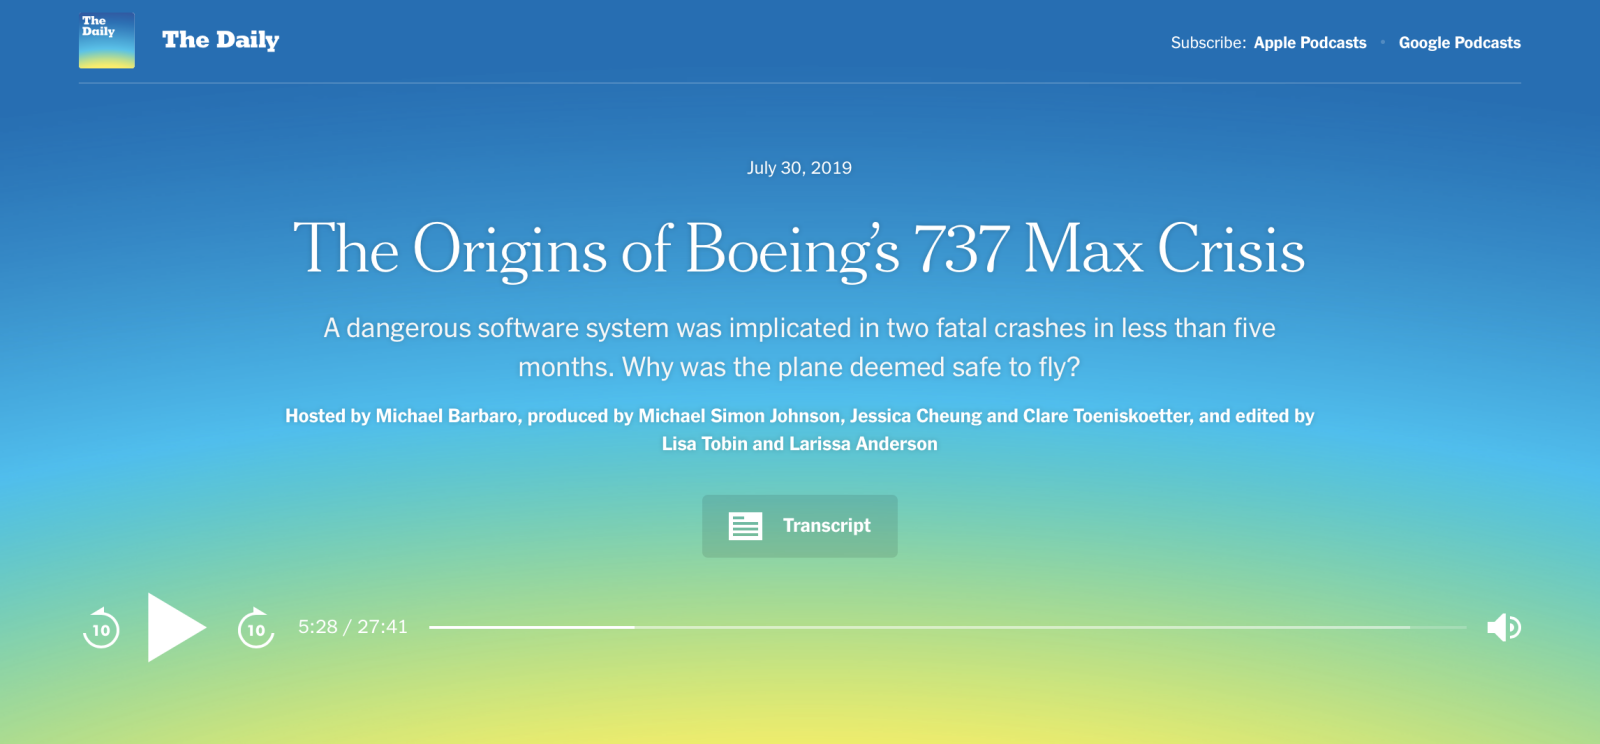 Attorney Justin Green in the New York Times' podcast The Origins of Boeing's 737 MAX Crisis